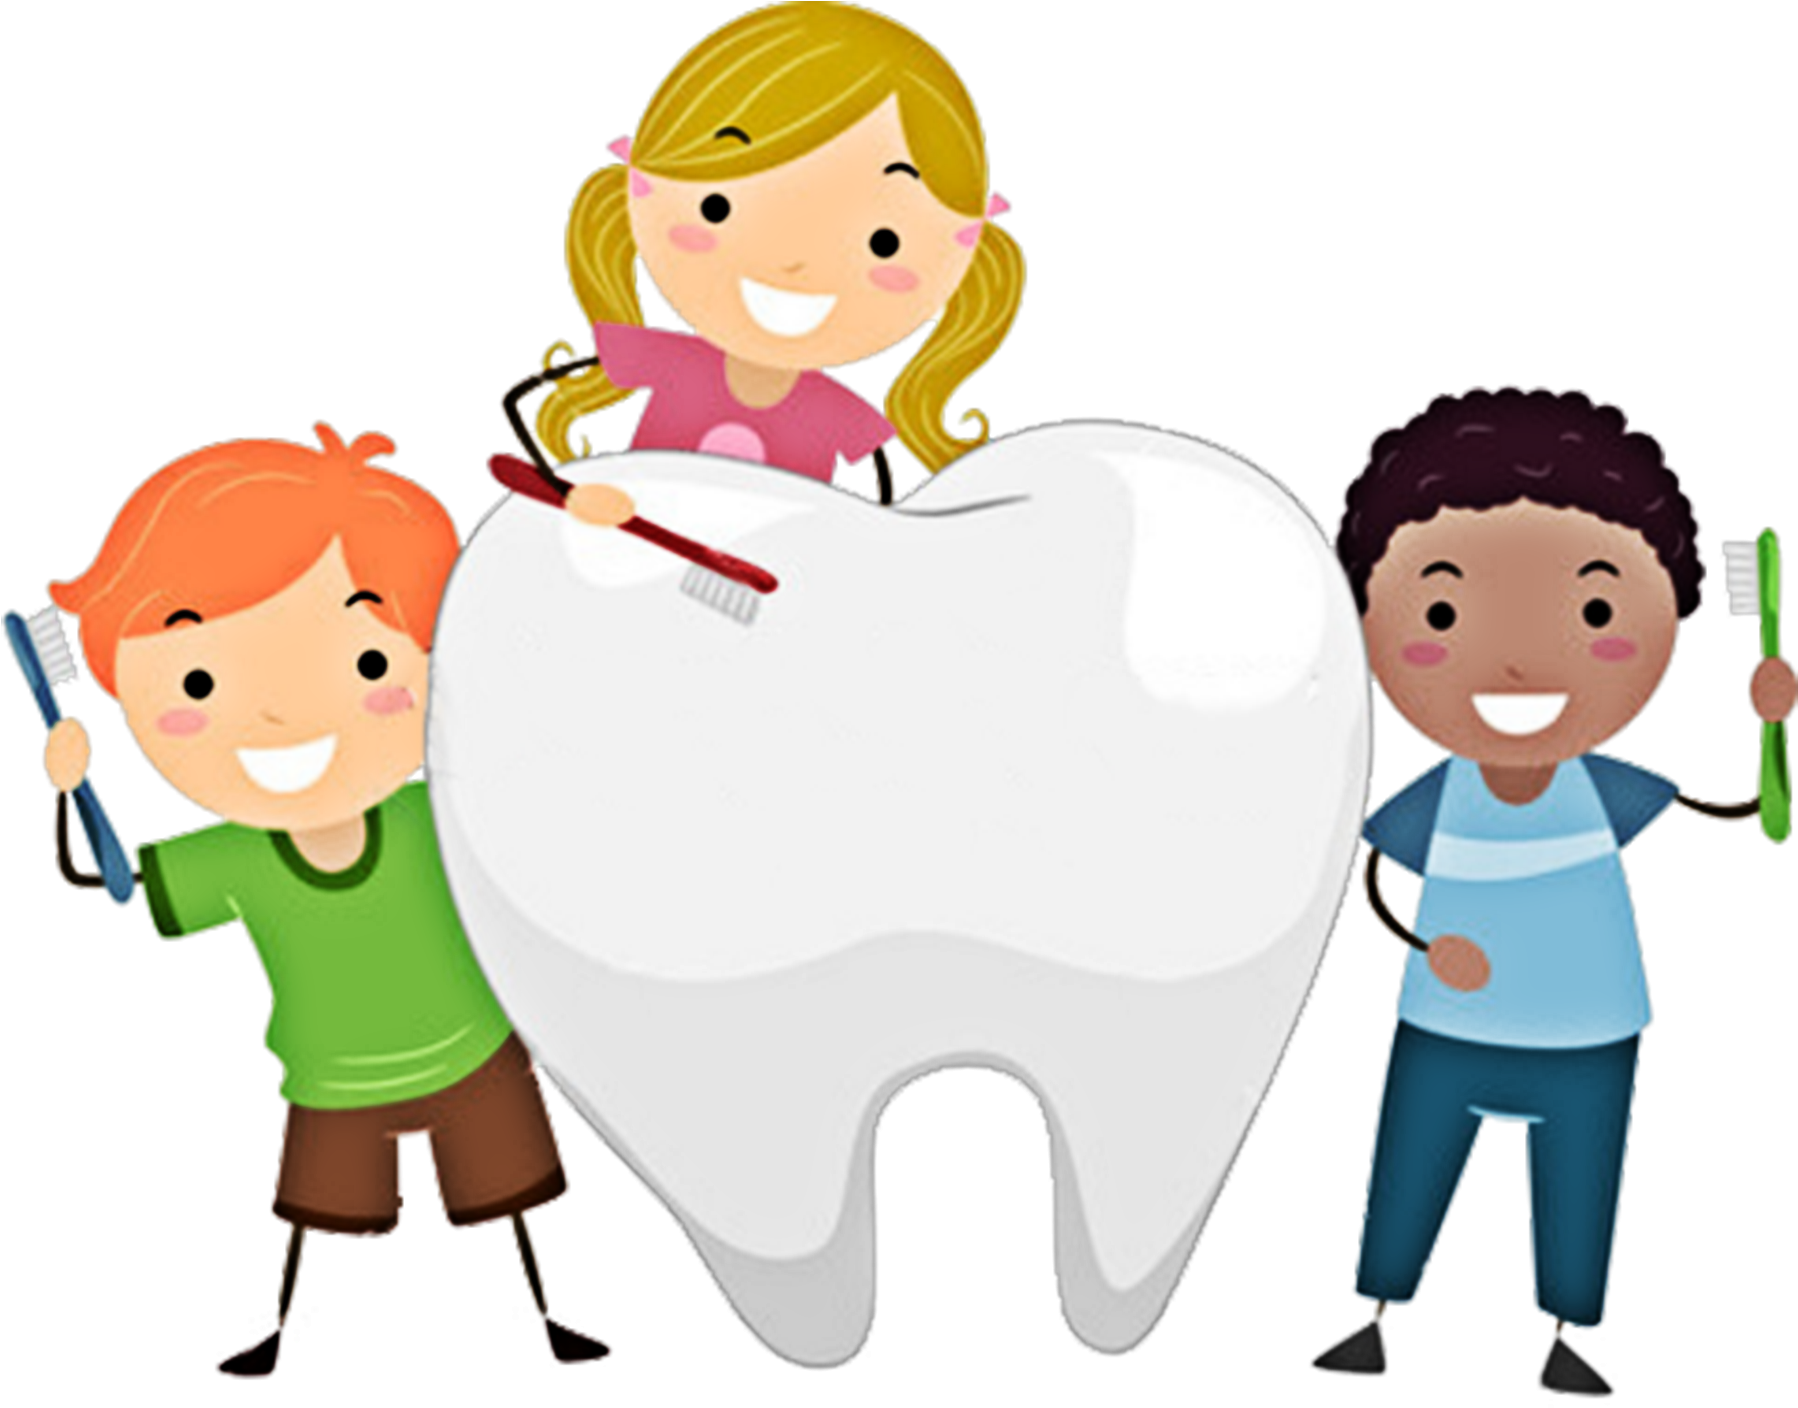 Clipart of children with toothbrushes and a large tooth- click for fillable enrollment form